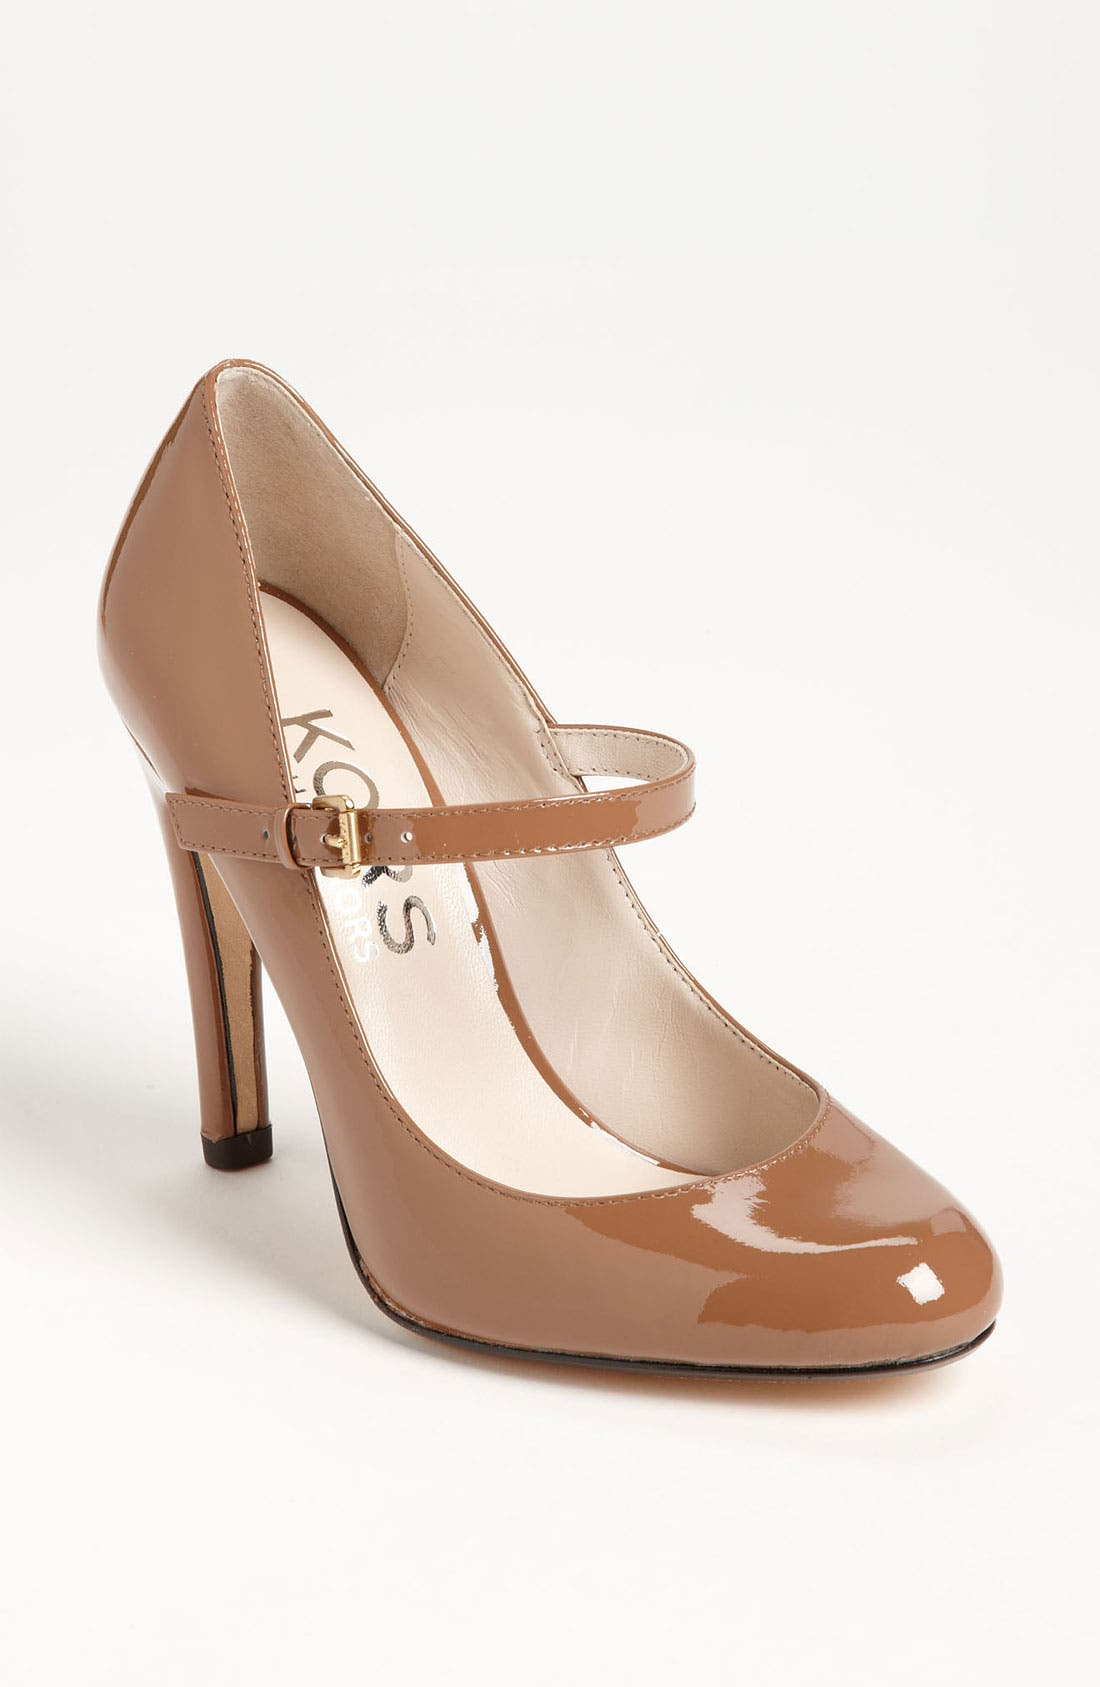 Main Image - KORS Michael Kors 'Galli' Pump